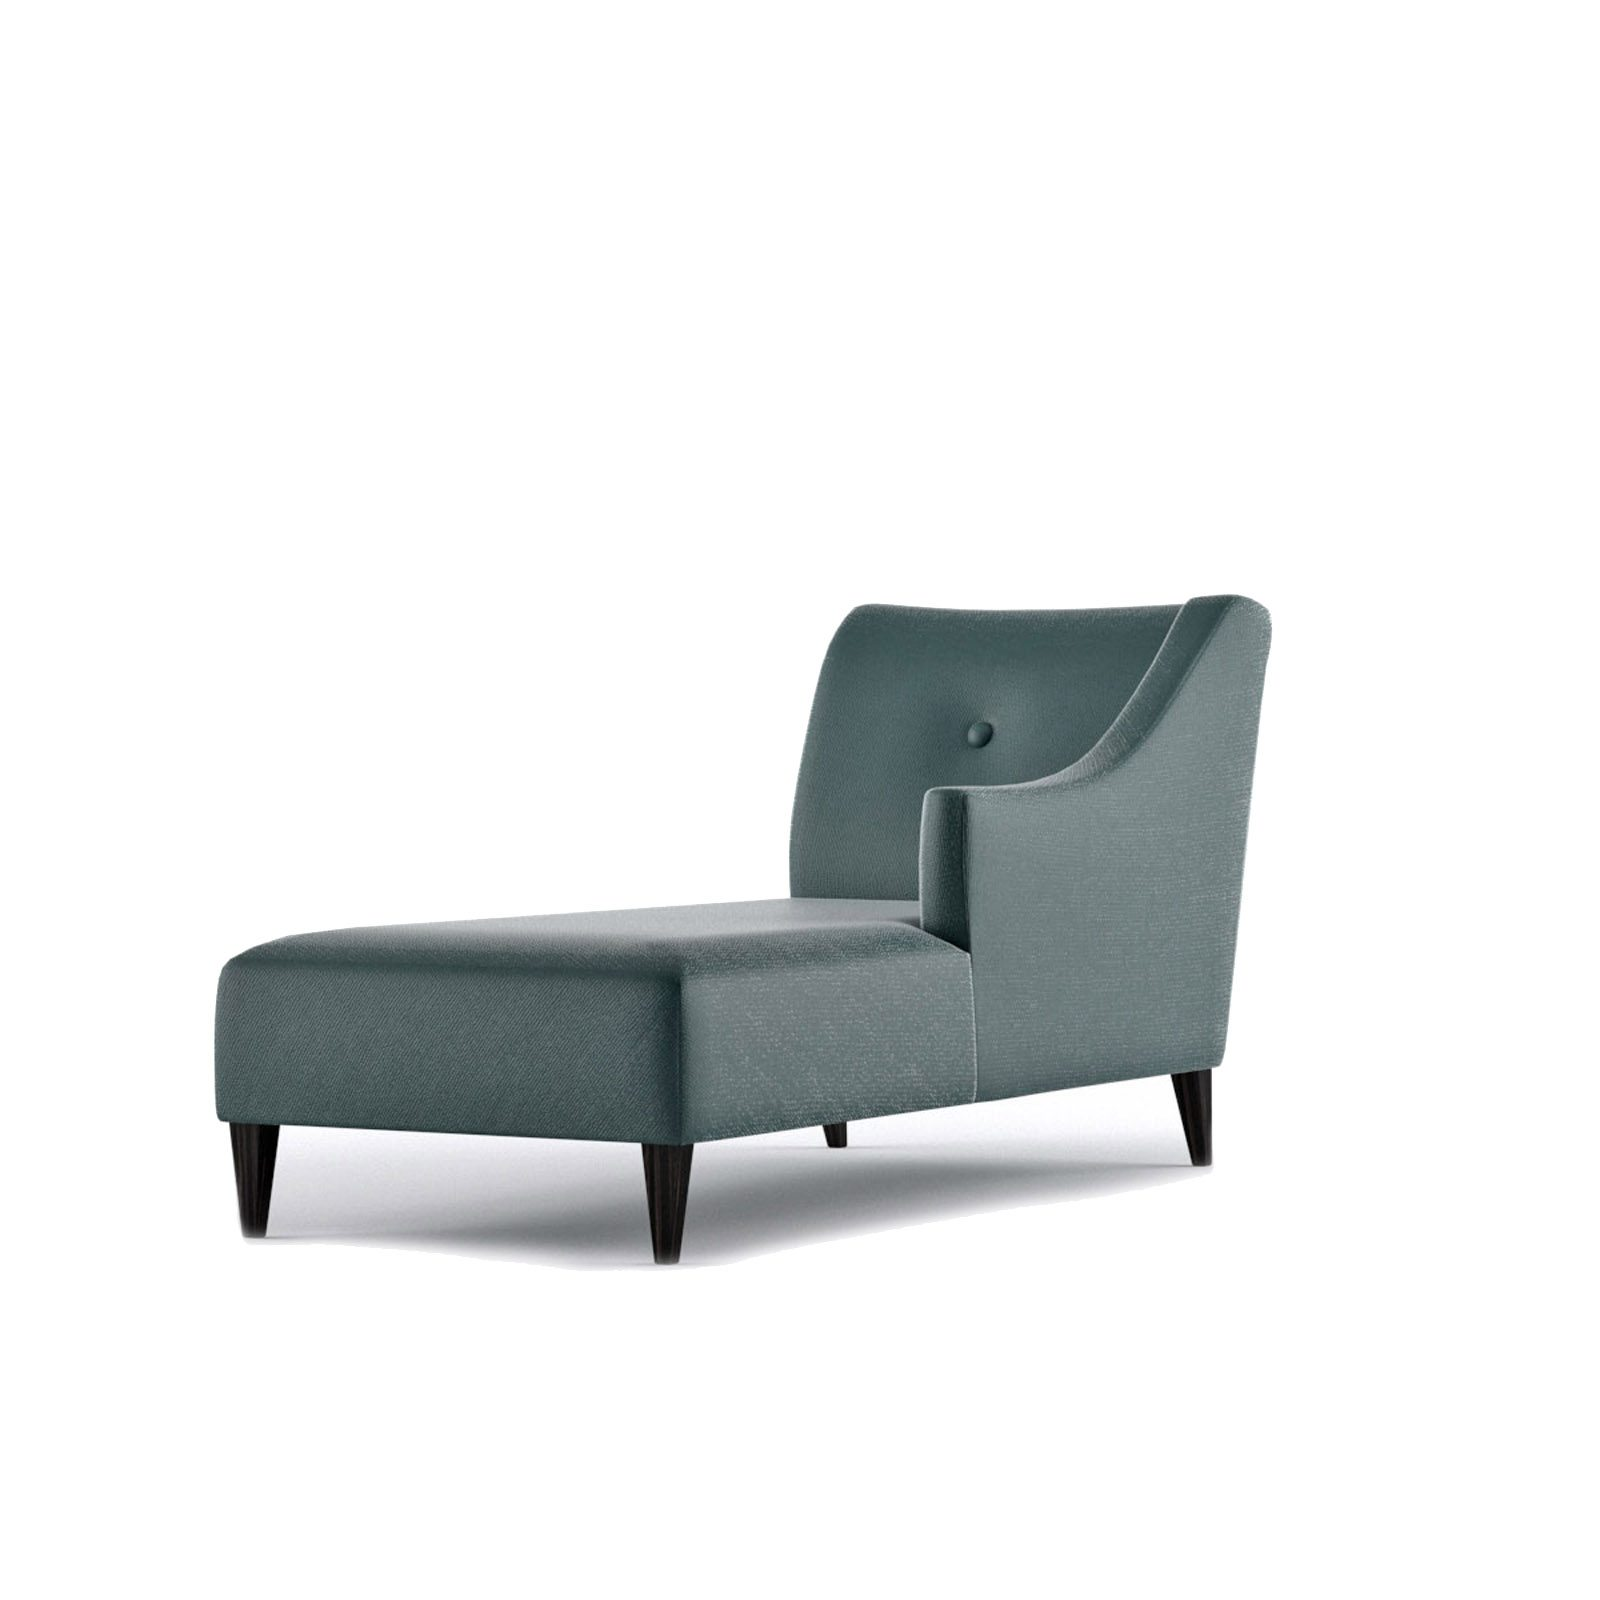 Luxury chaise longues victoria chaise longue bonham for Chaise longue textilene